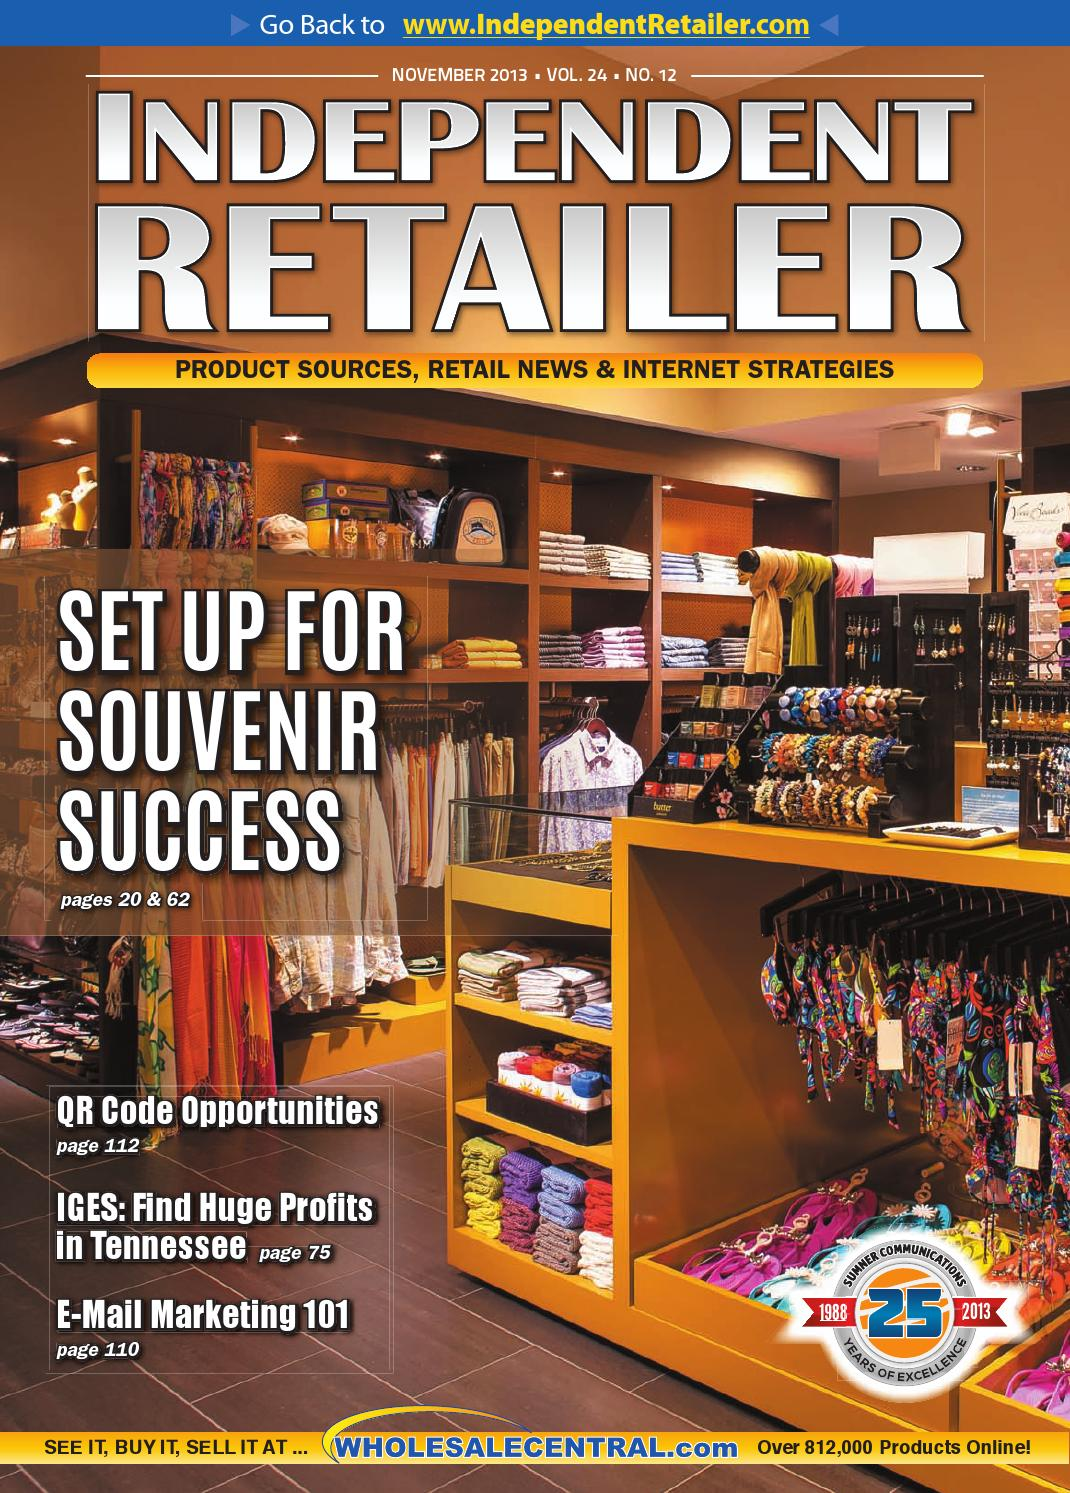 Independent Retailer 11-13 by Sumner Communications - issuu 8fd11a436cc3